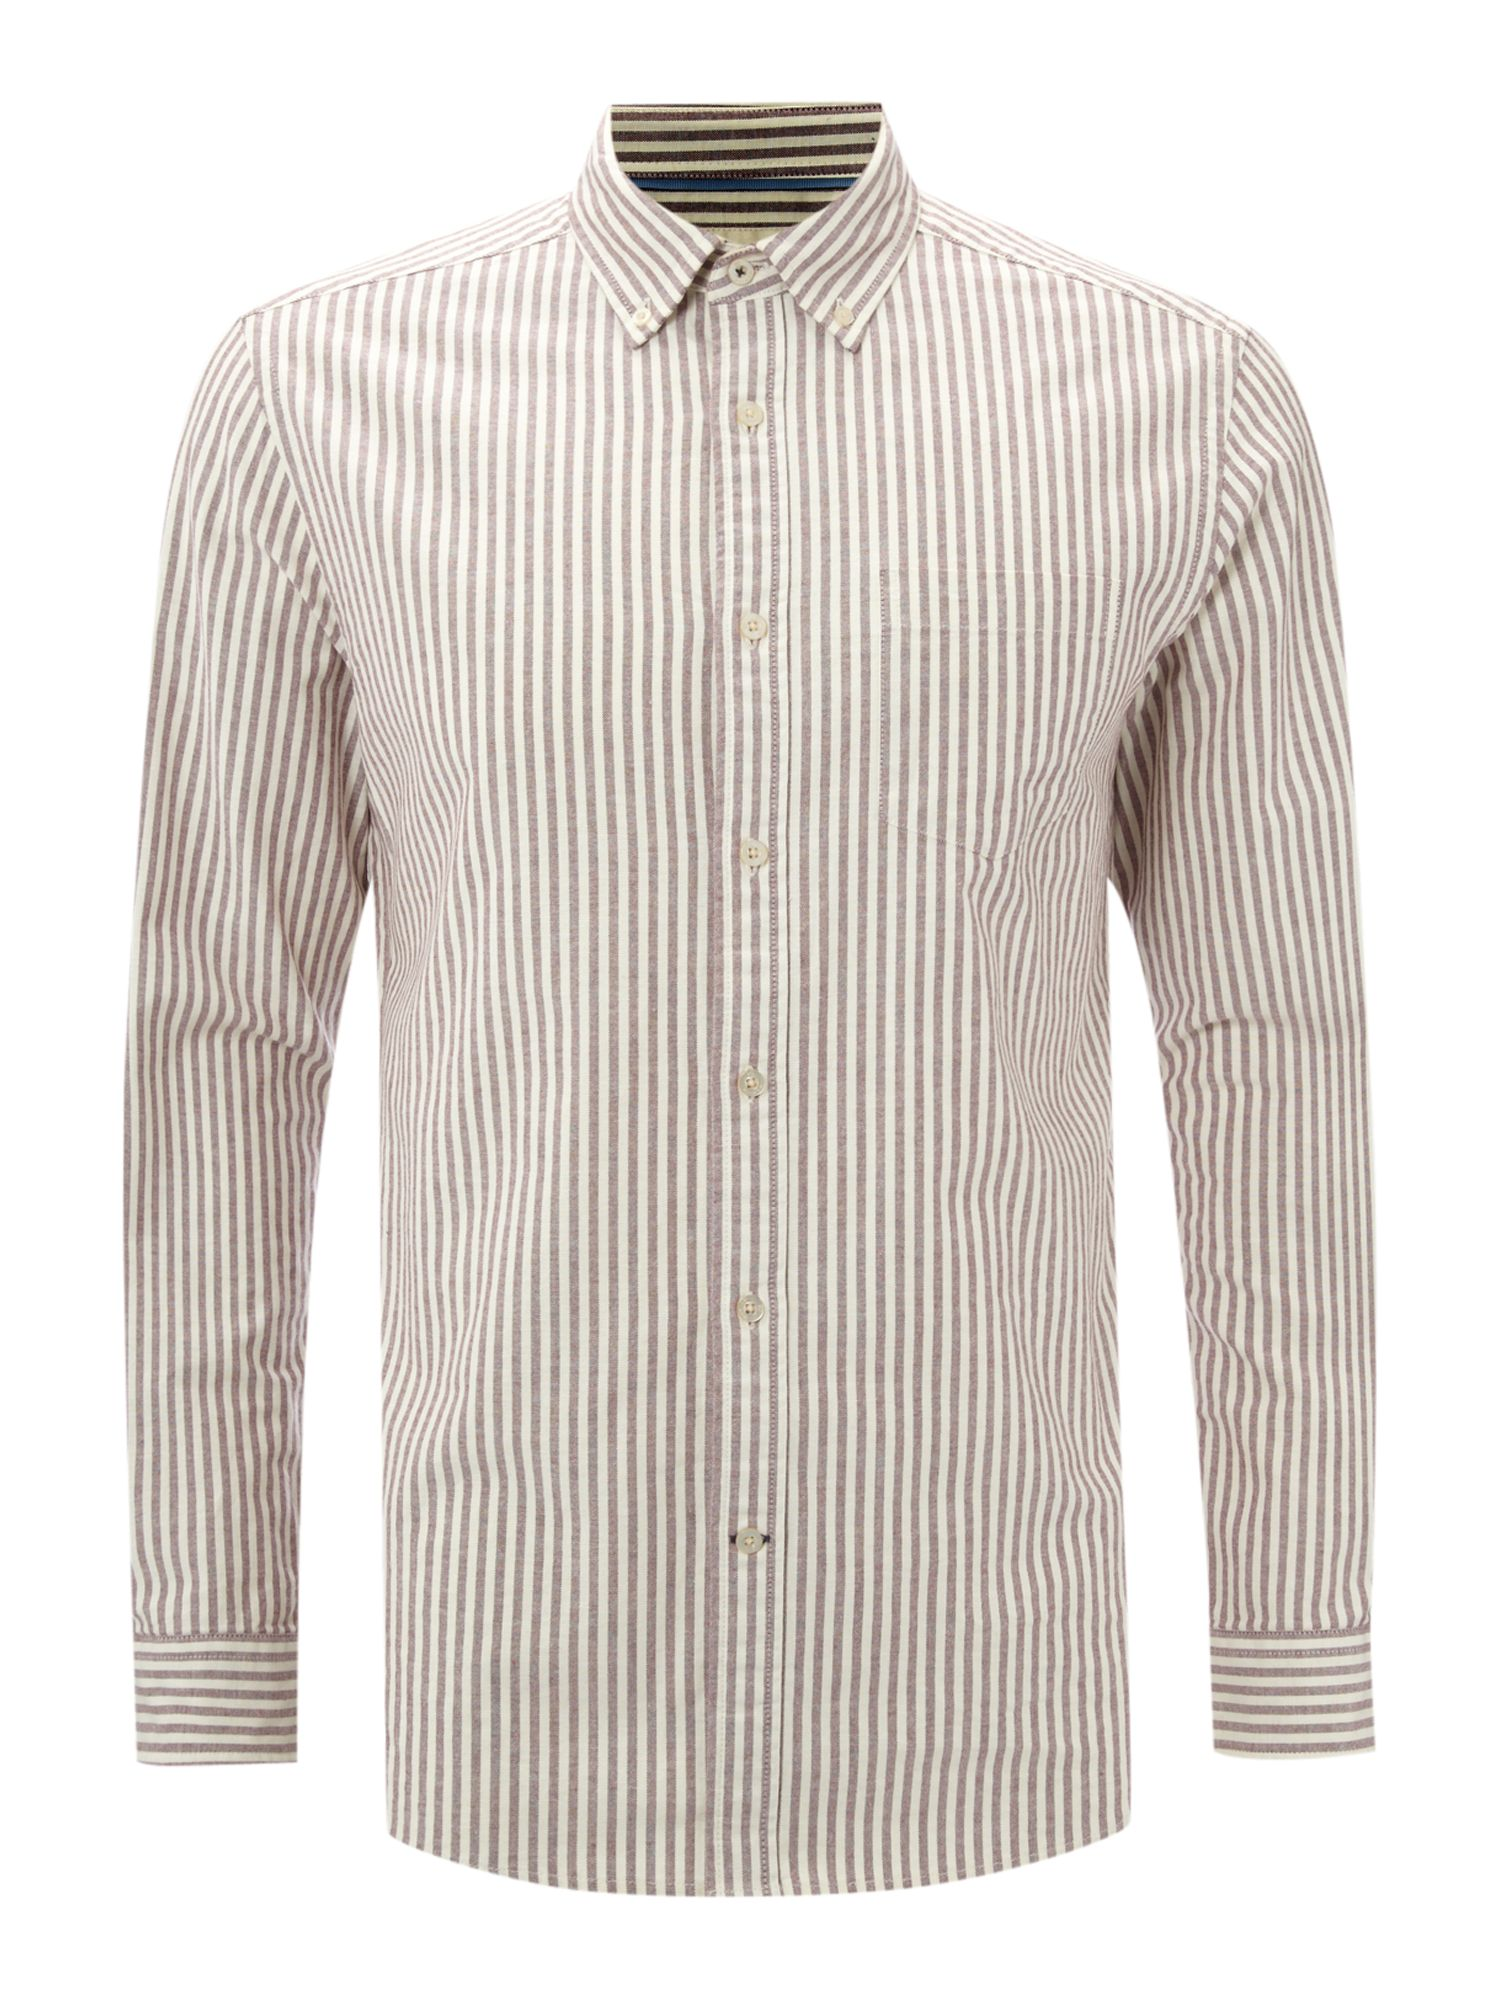 Mercer stripe long sleeve shirt